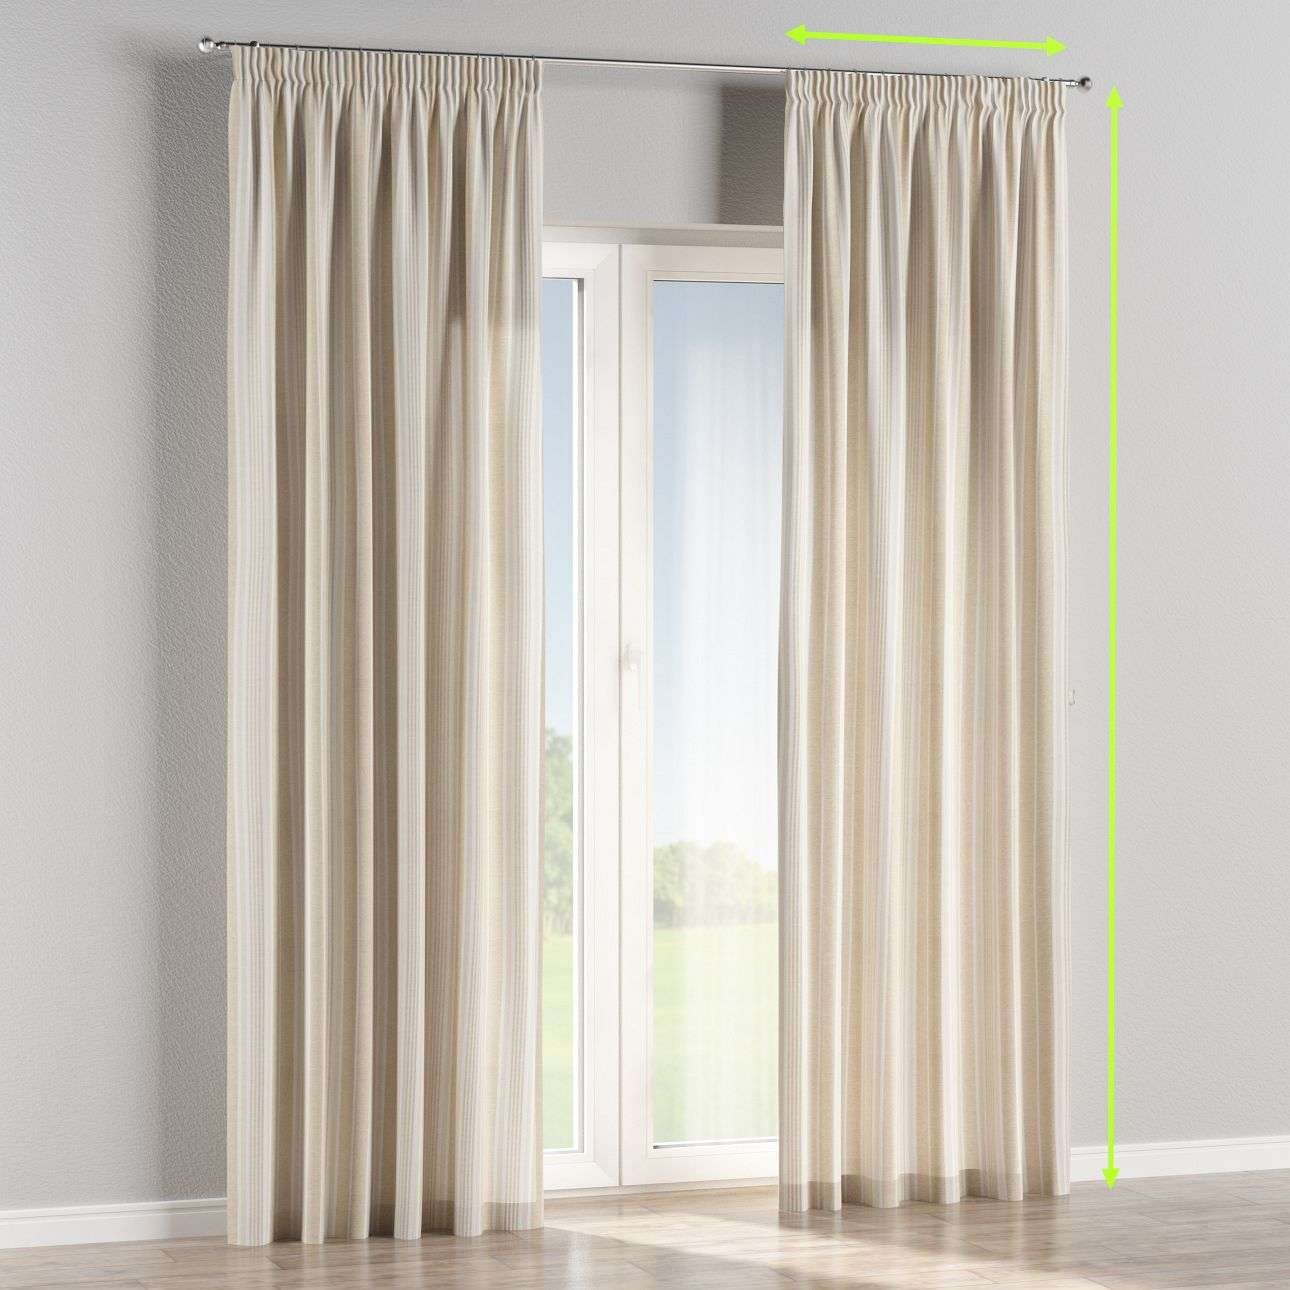 Pencil pleat lined curtains in collection Rustica, fabric: 138-24